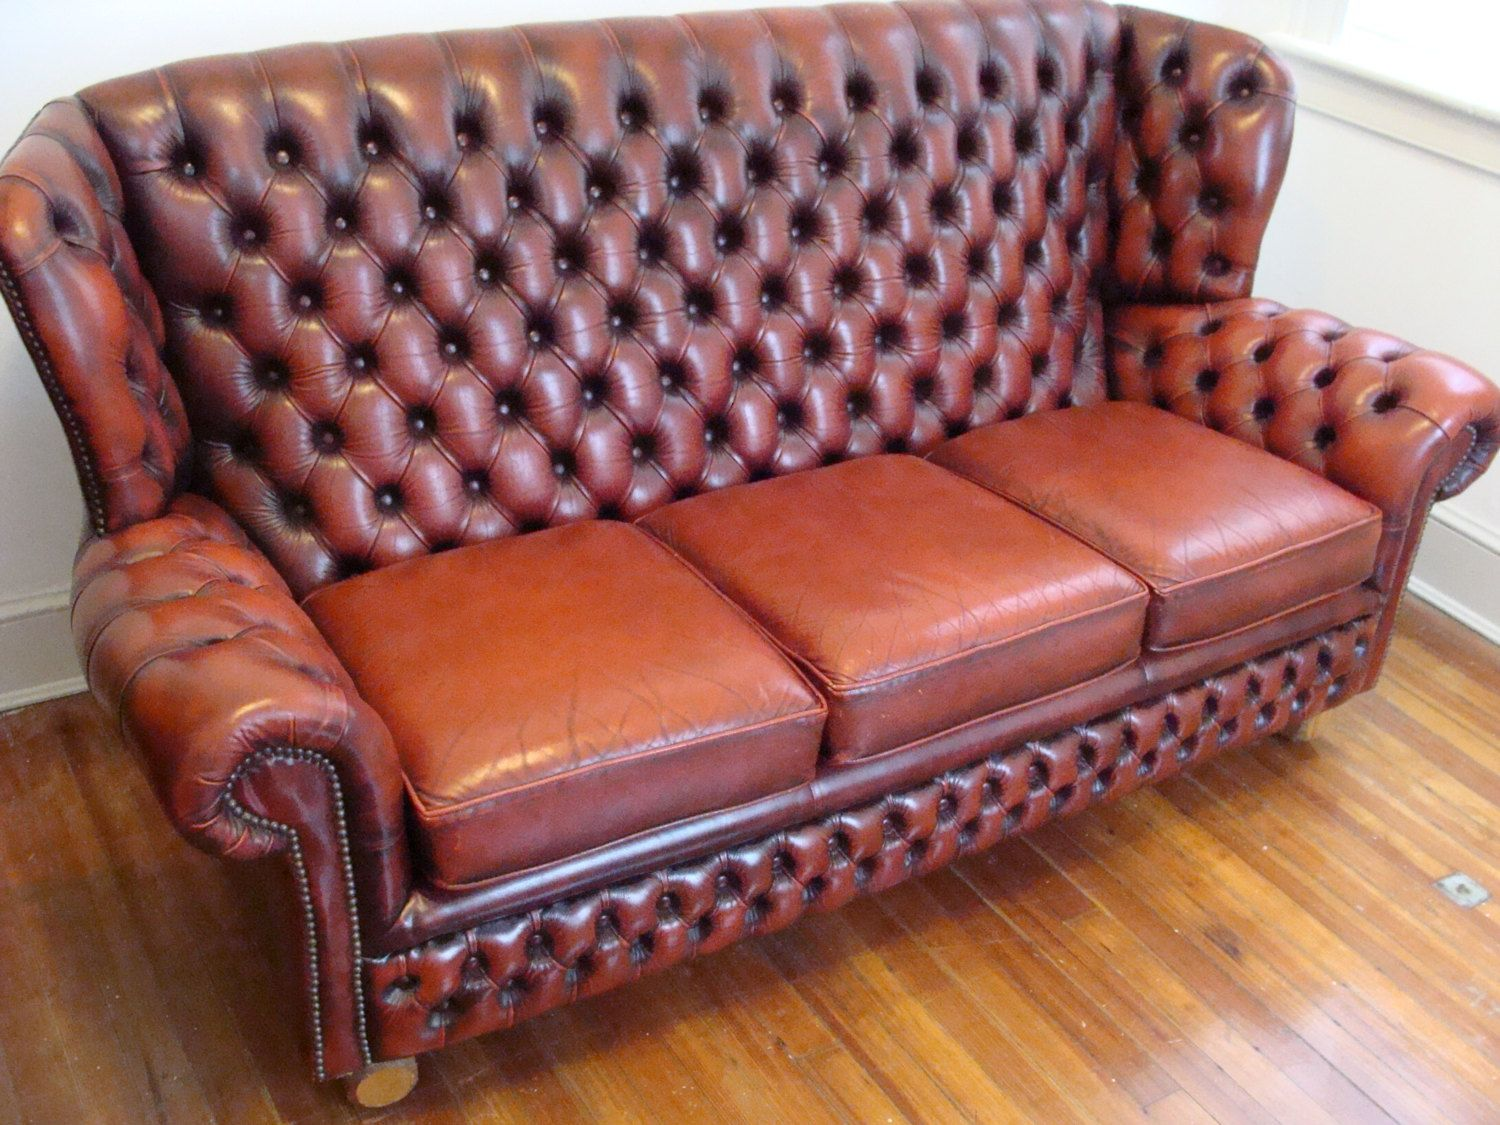 Merveilleux Gorgeous Vintage English Monks Chesterfield Sofa Tufted High Wing Back  British 3 Seater Couch 6FT.